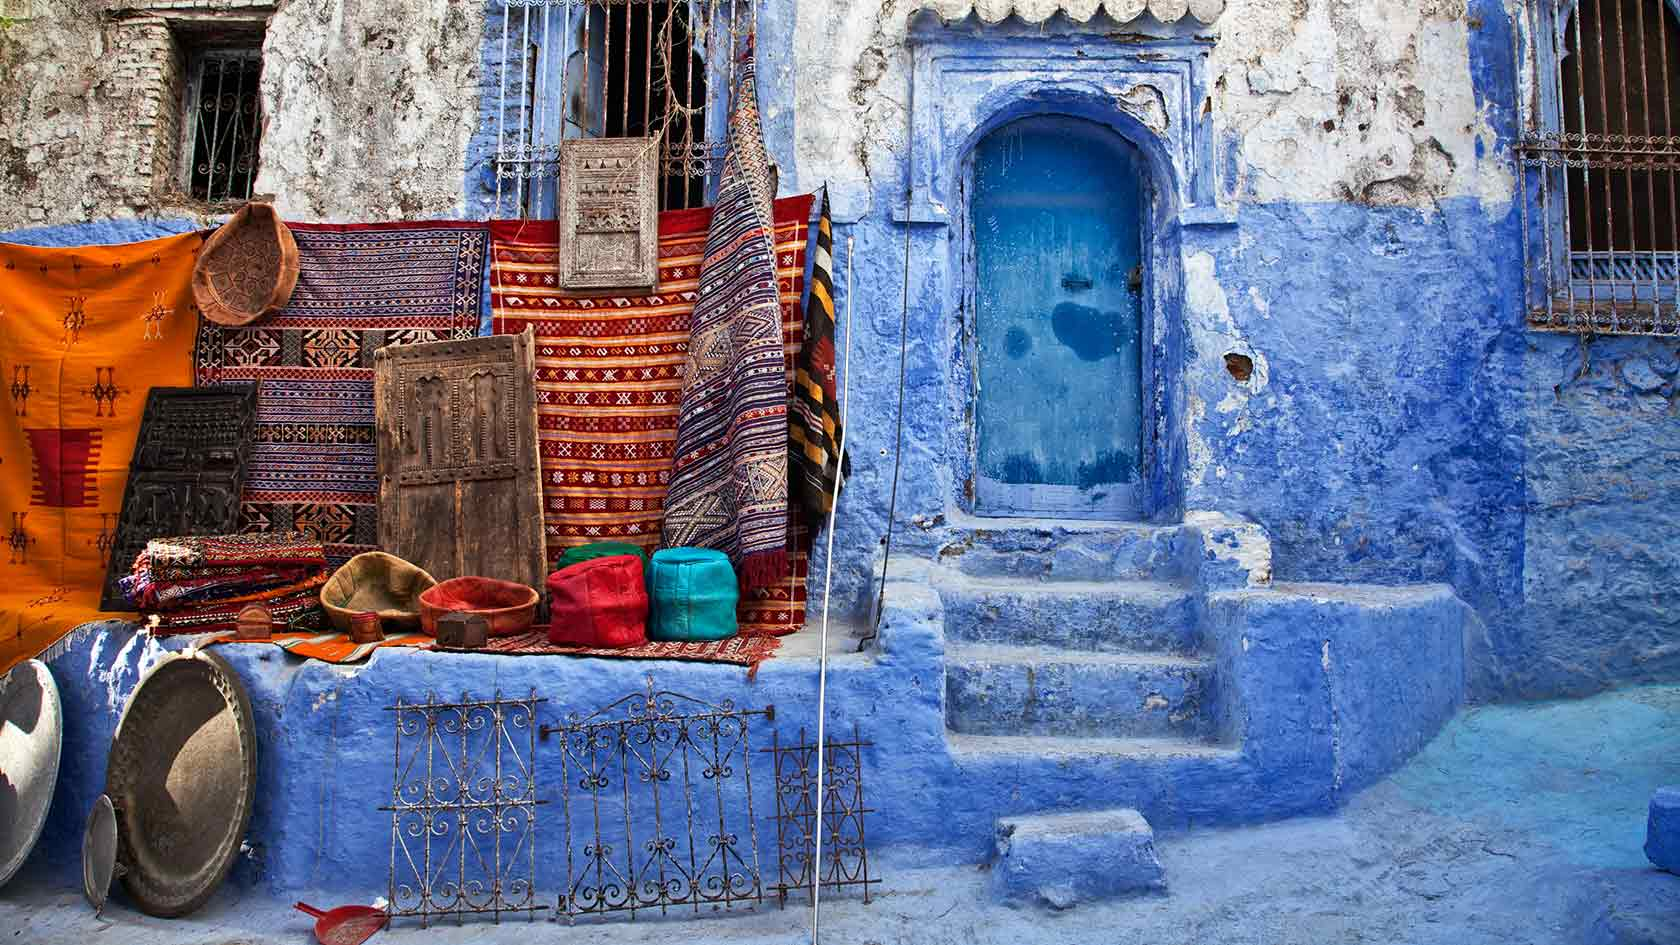 Blue Walls of Buildings in Morocco 399.47 Kb